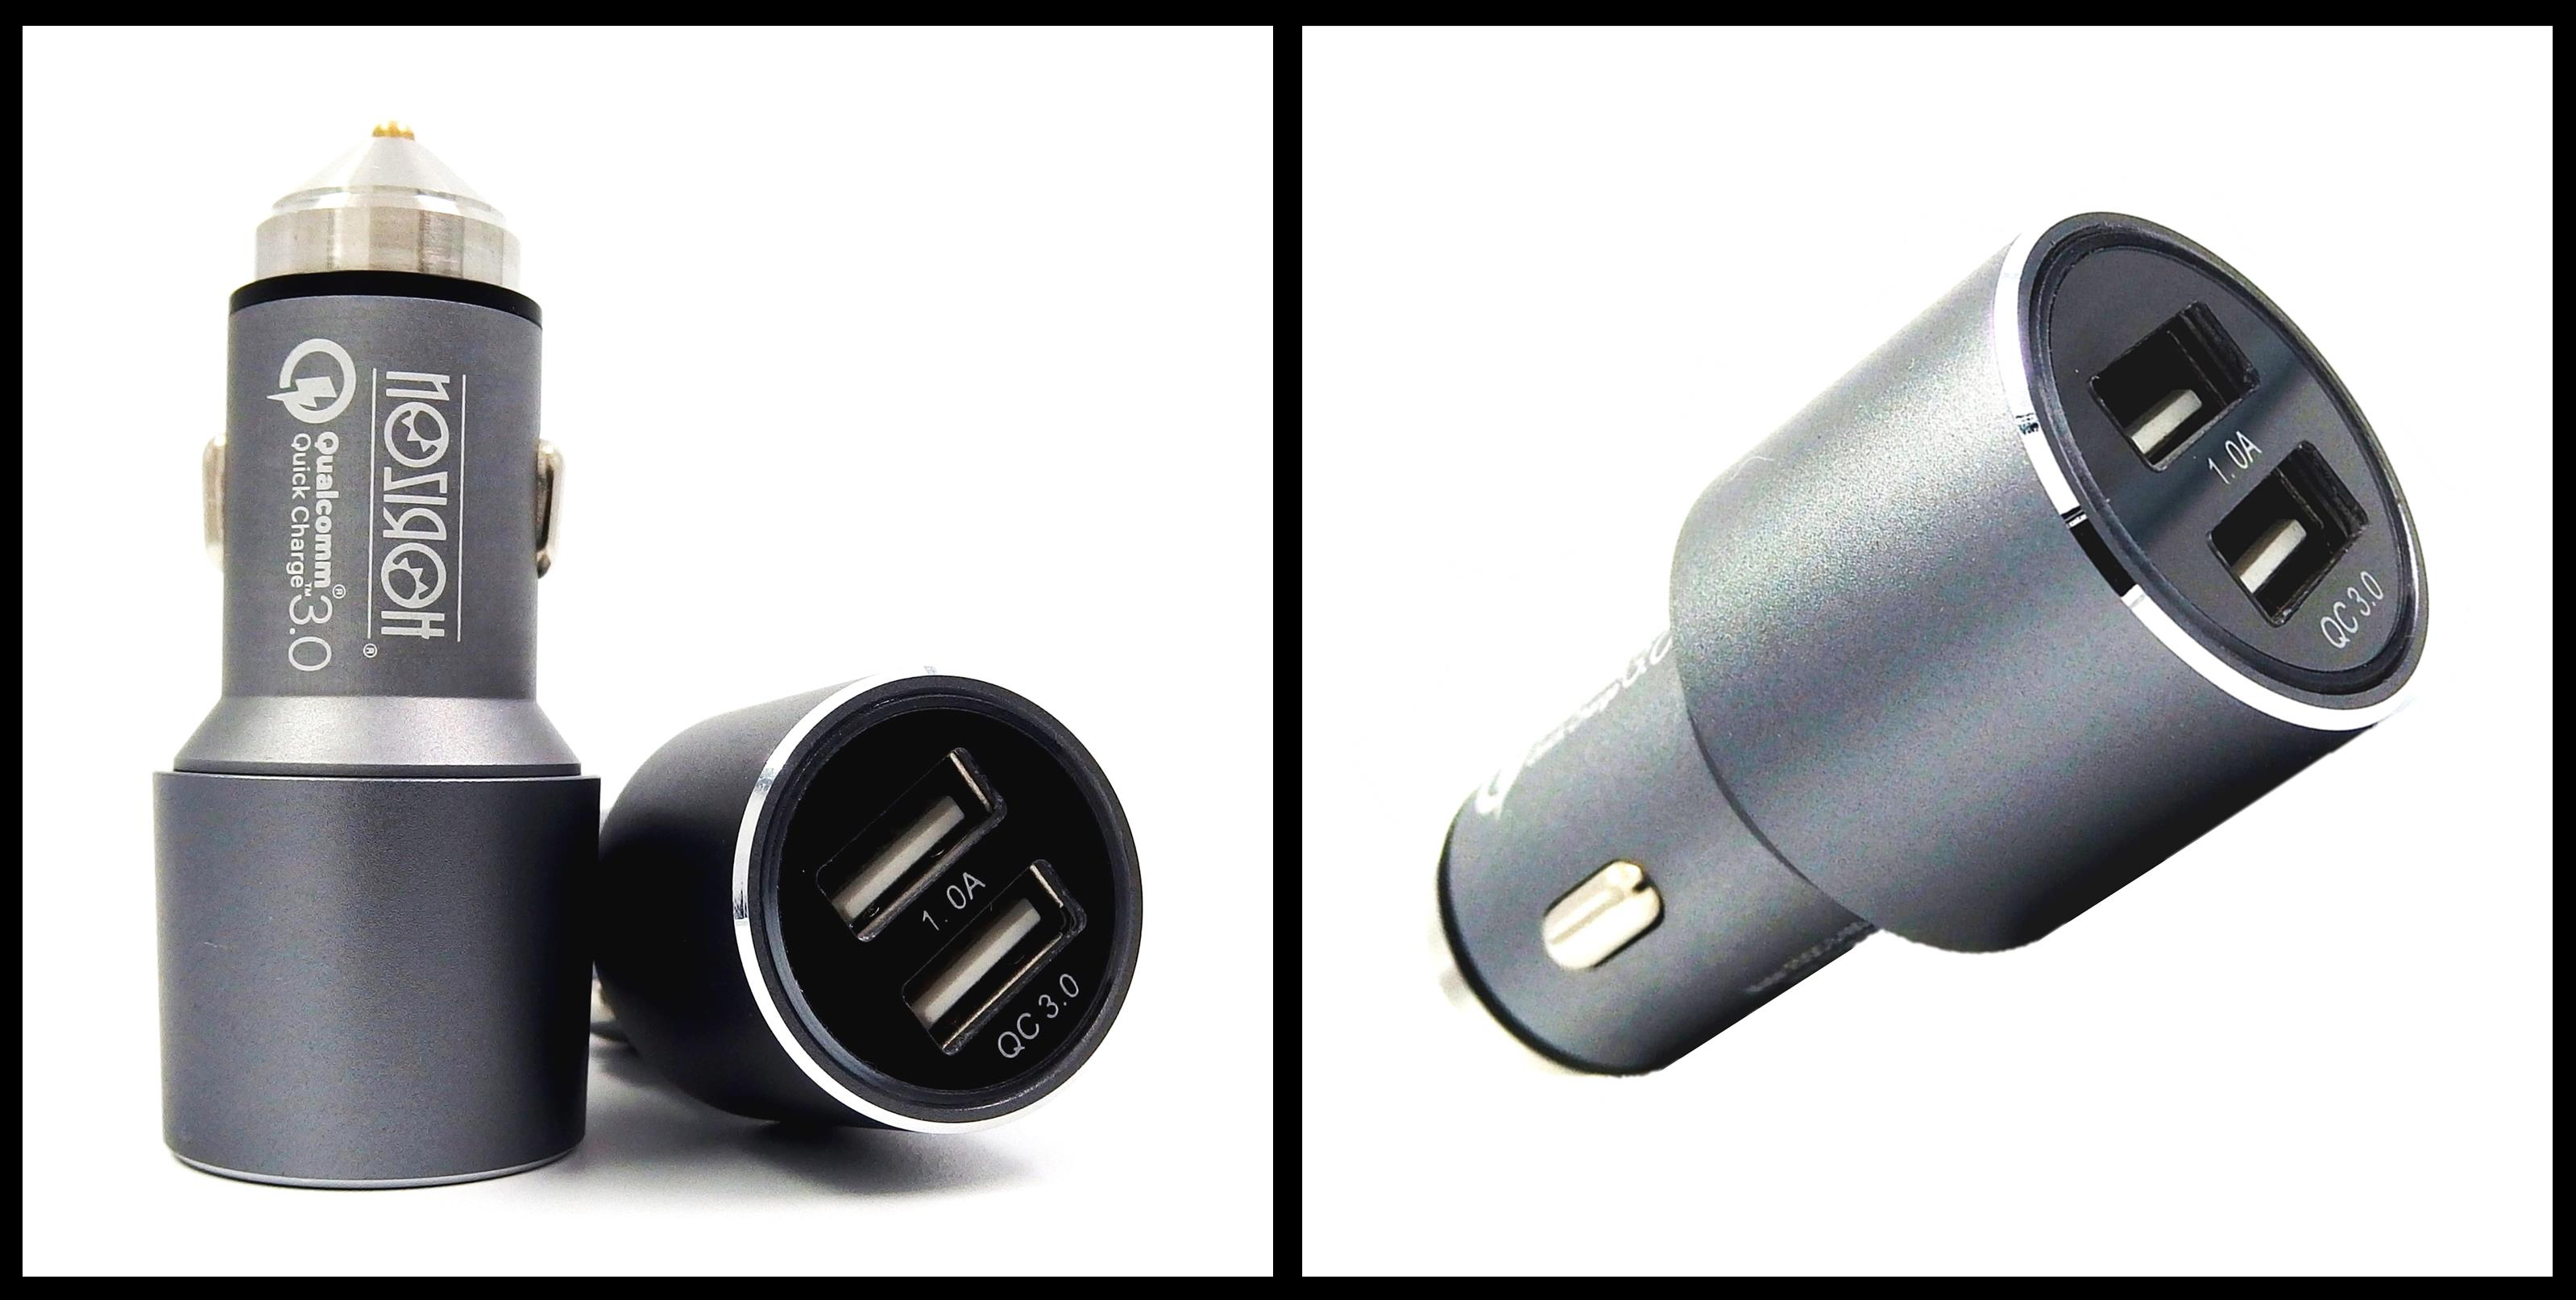 travel-fast-car-charger-qualcomm-quick-charge-european-noziroh-power